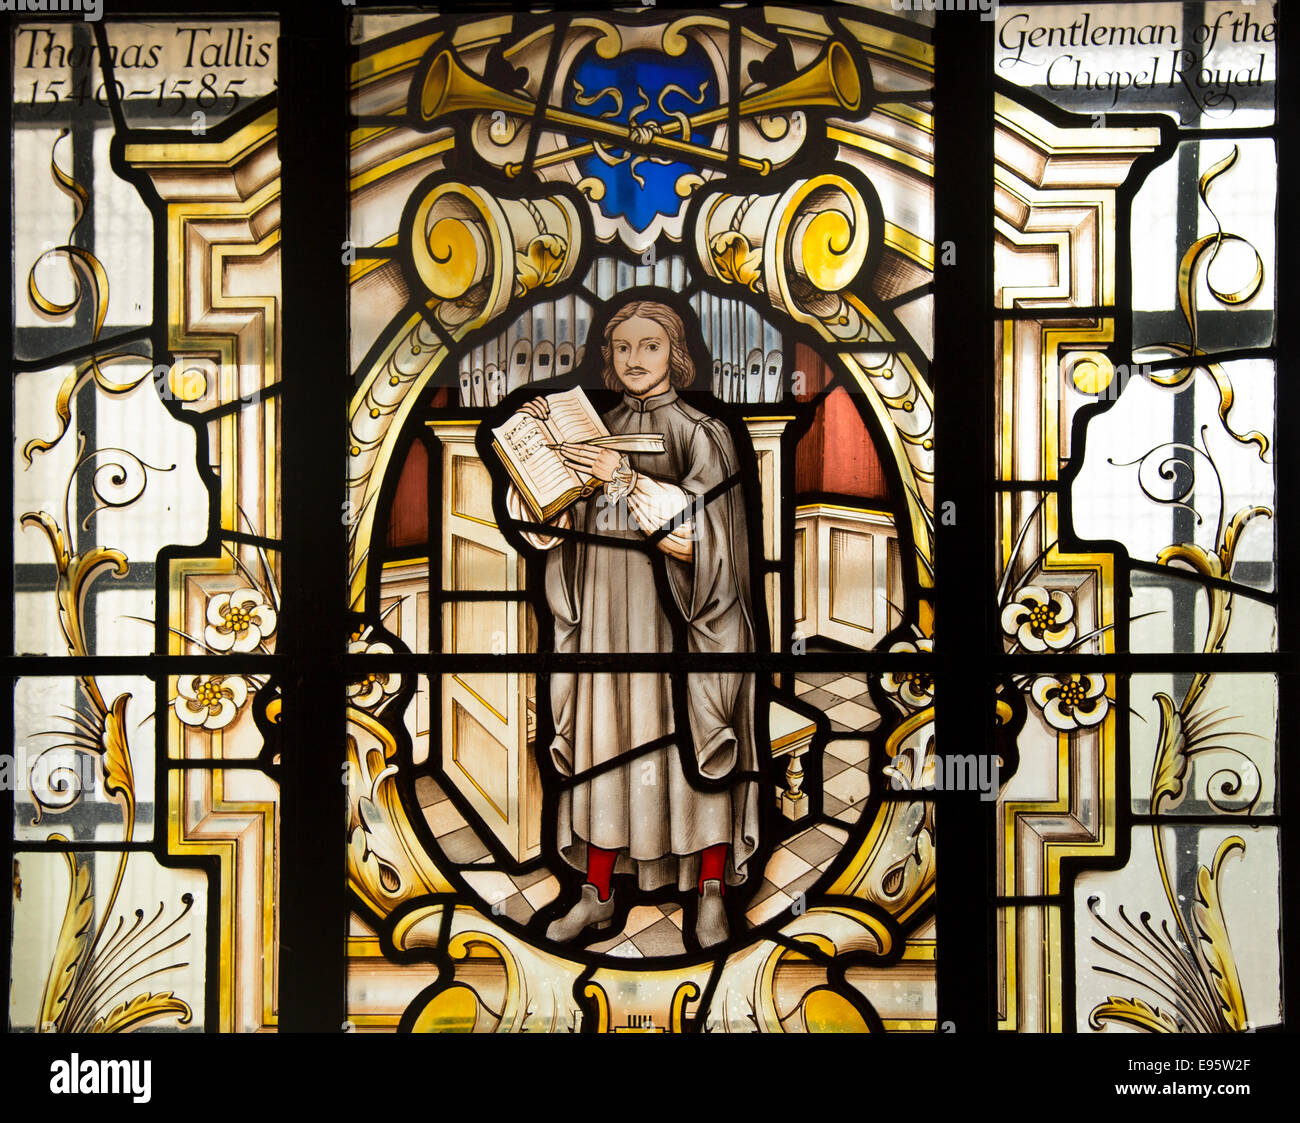 Thomas Tallis, composer of English choral music, depicted in stained glass window at St Alfege church, Greenwich, - Stock Image